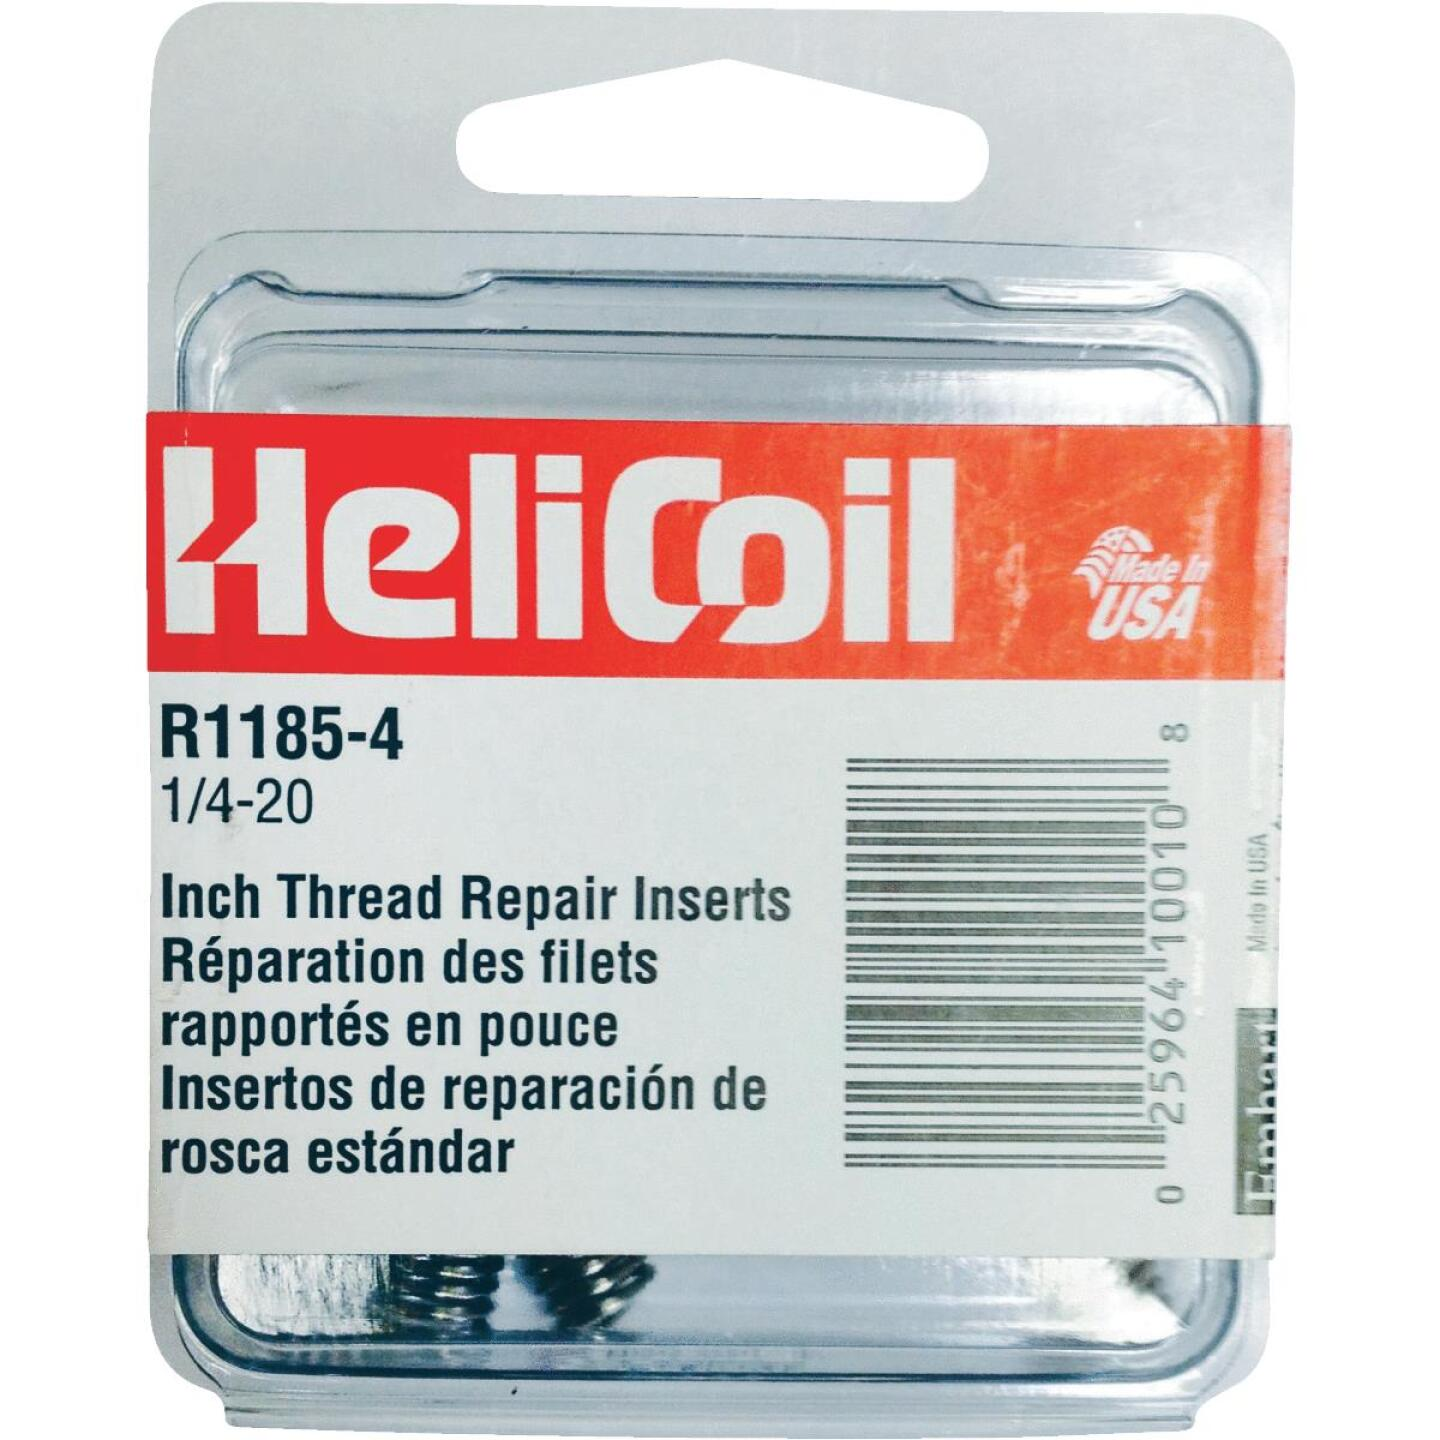 HeliCoil 1/4-20 Thread Insert Pack (12-Pack) Image 1